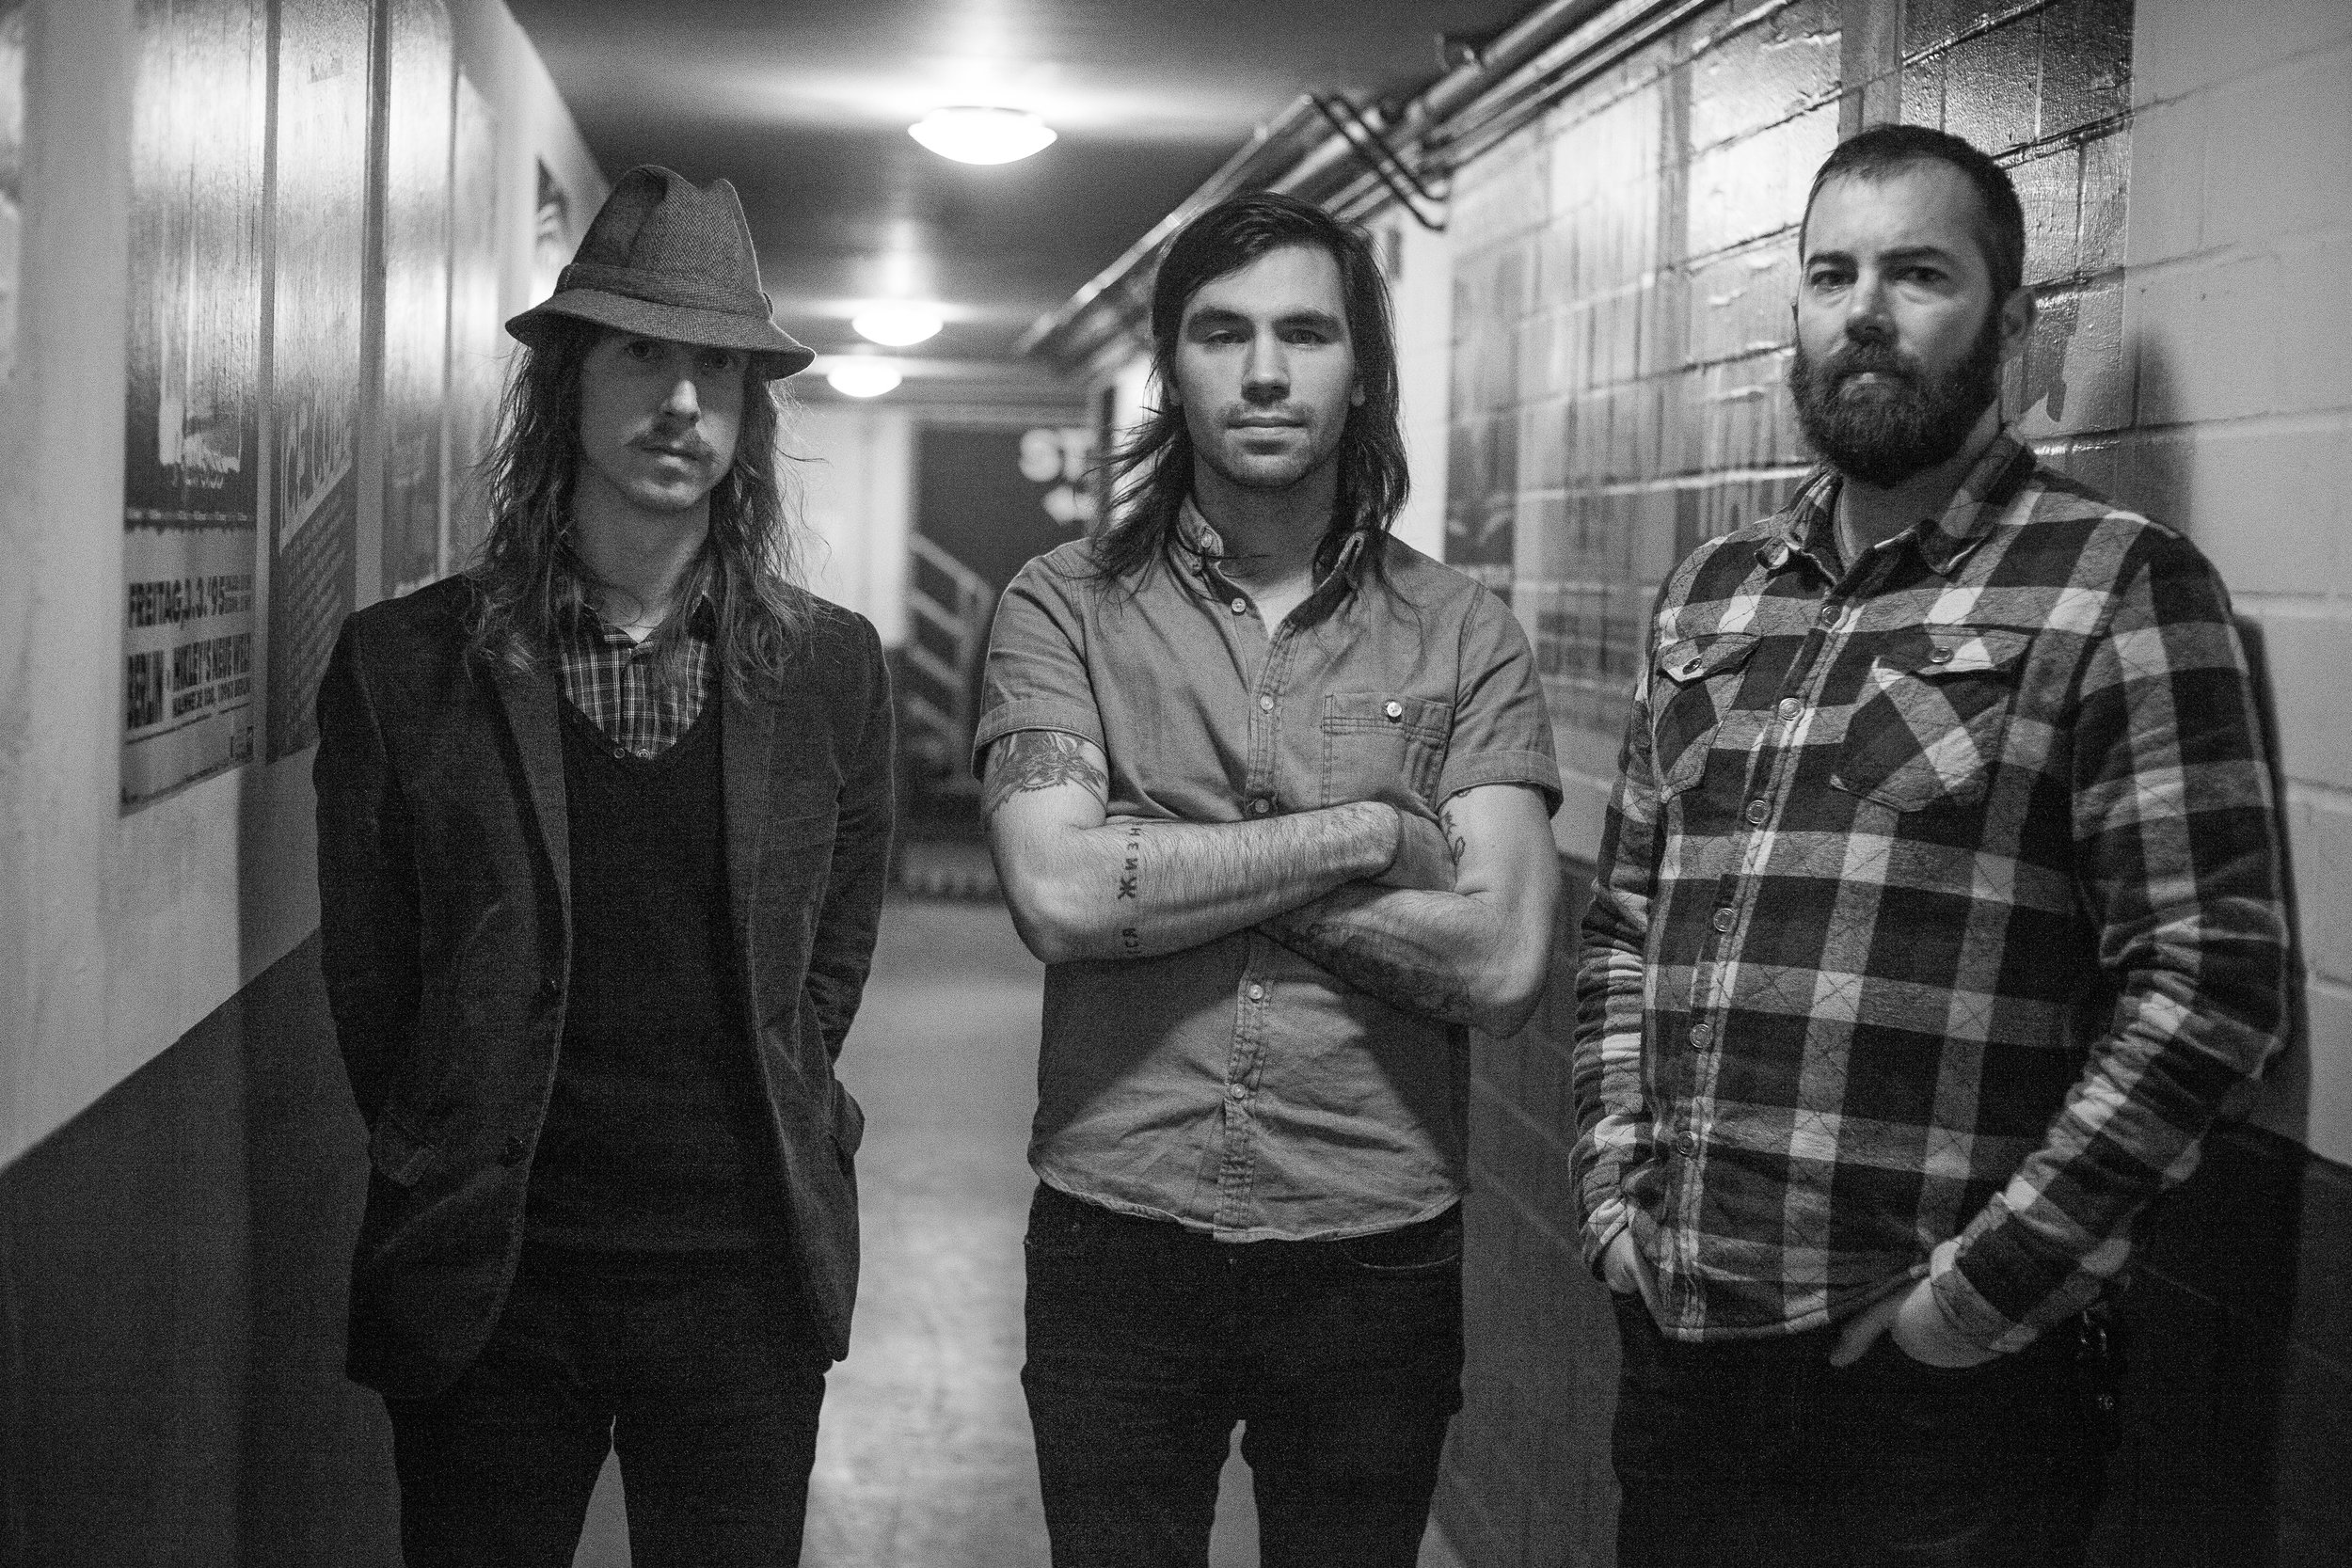 Russian Circles band at Gorilla in Manchester on August 13th 2019